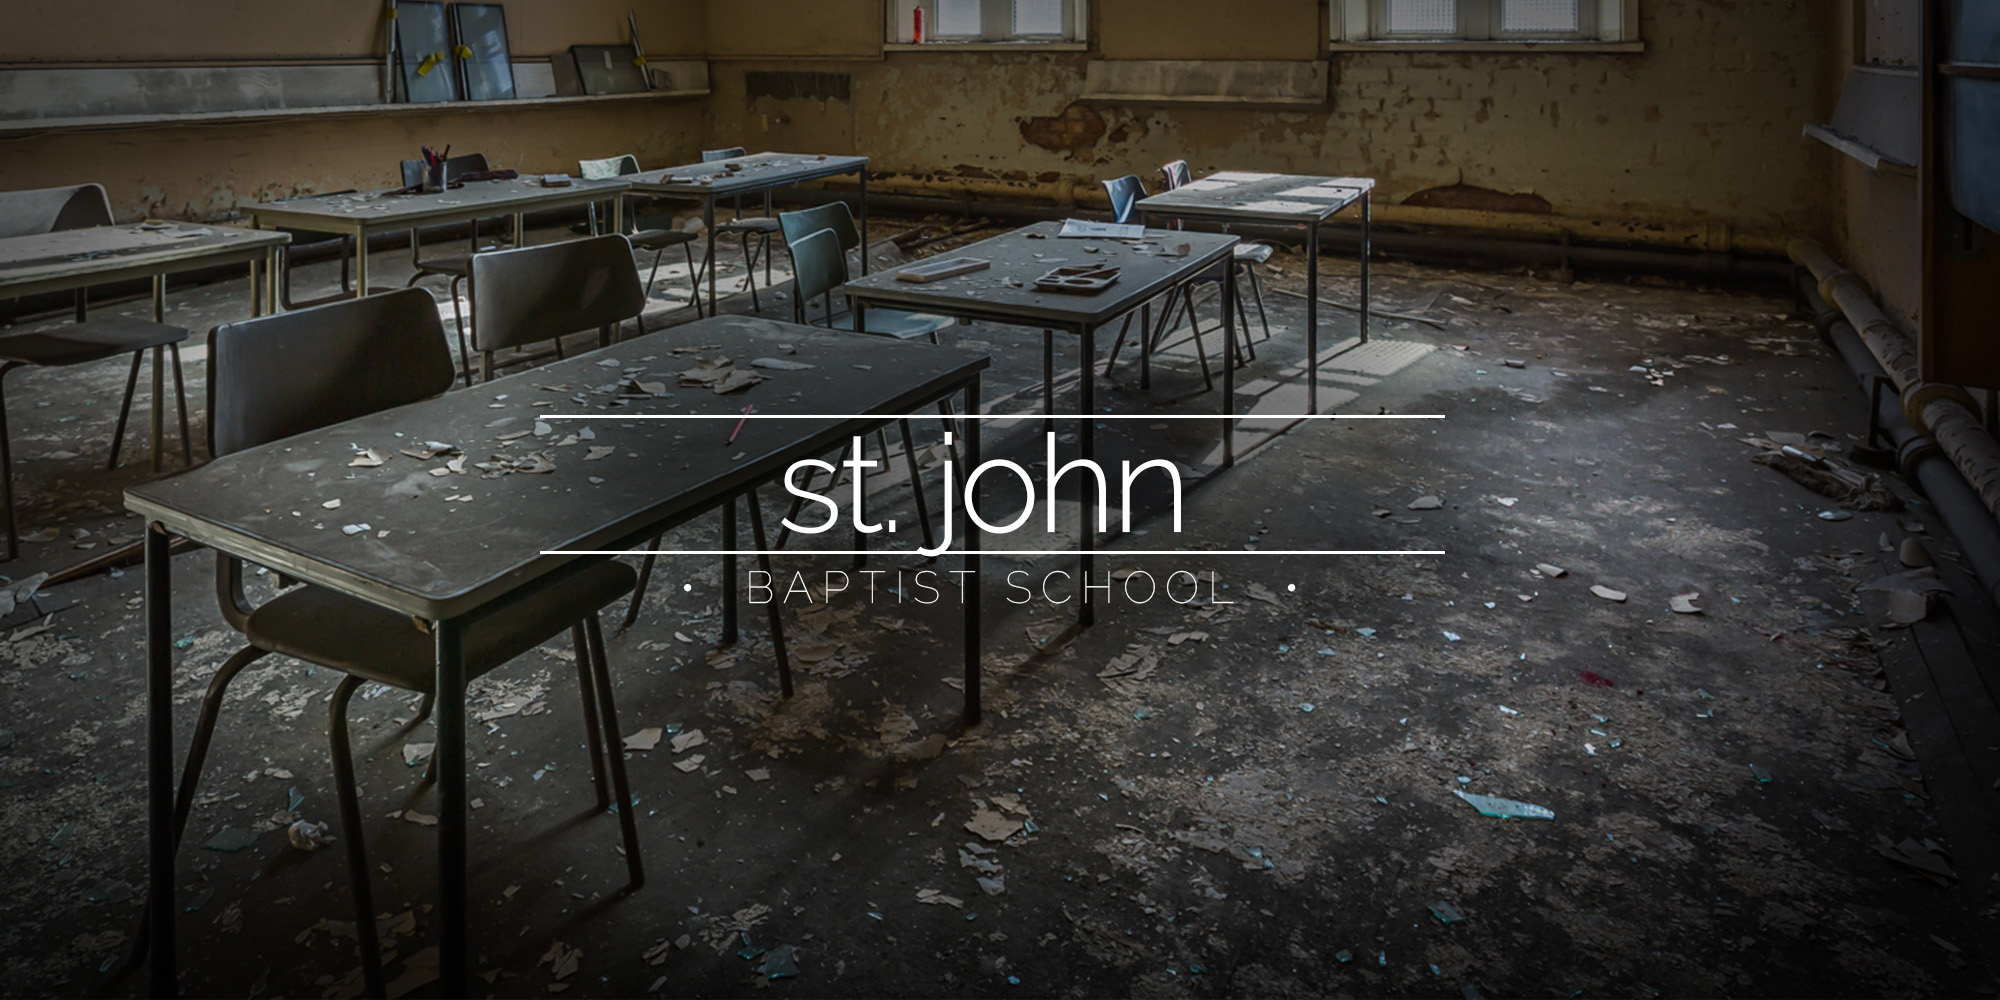 St John the Baptist School, Wigan